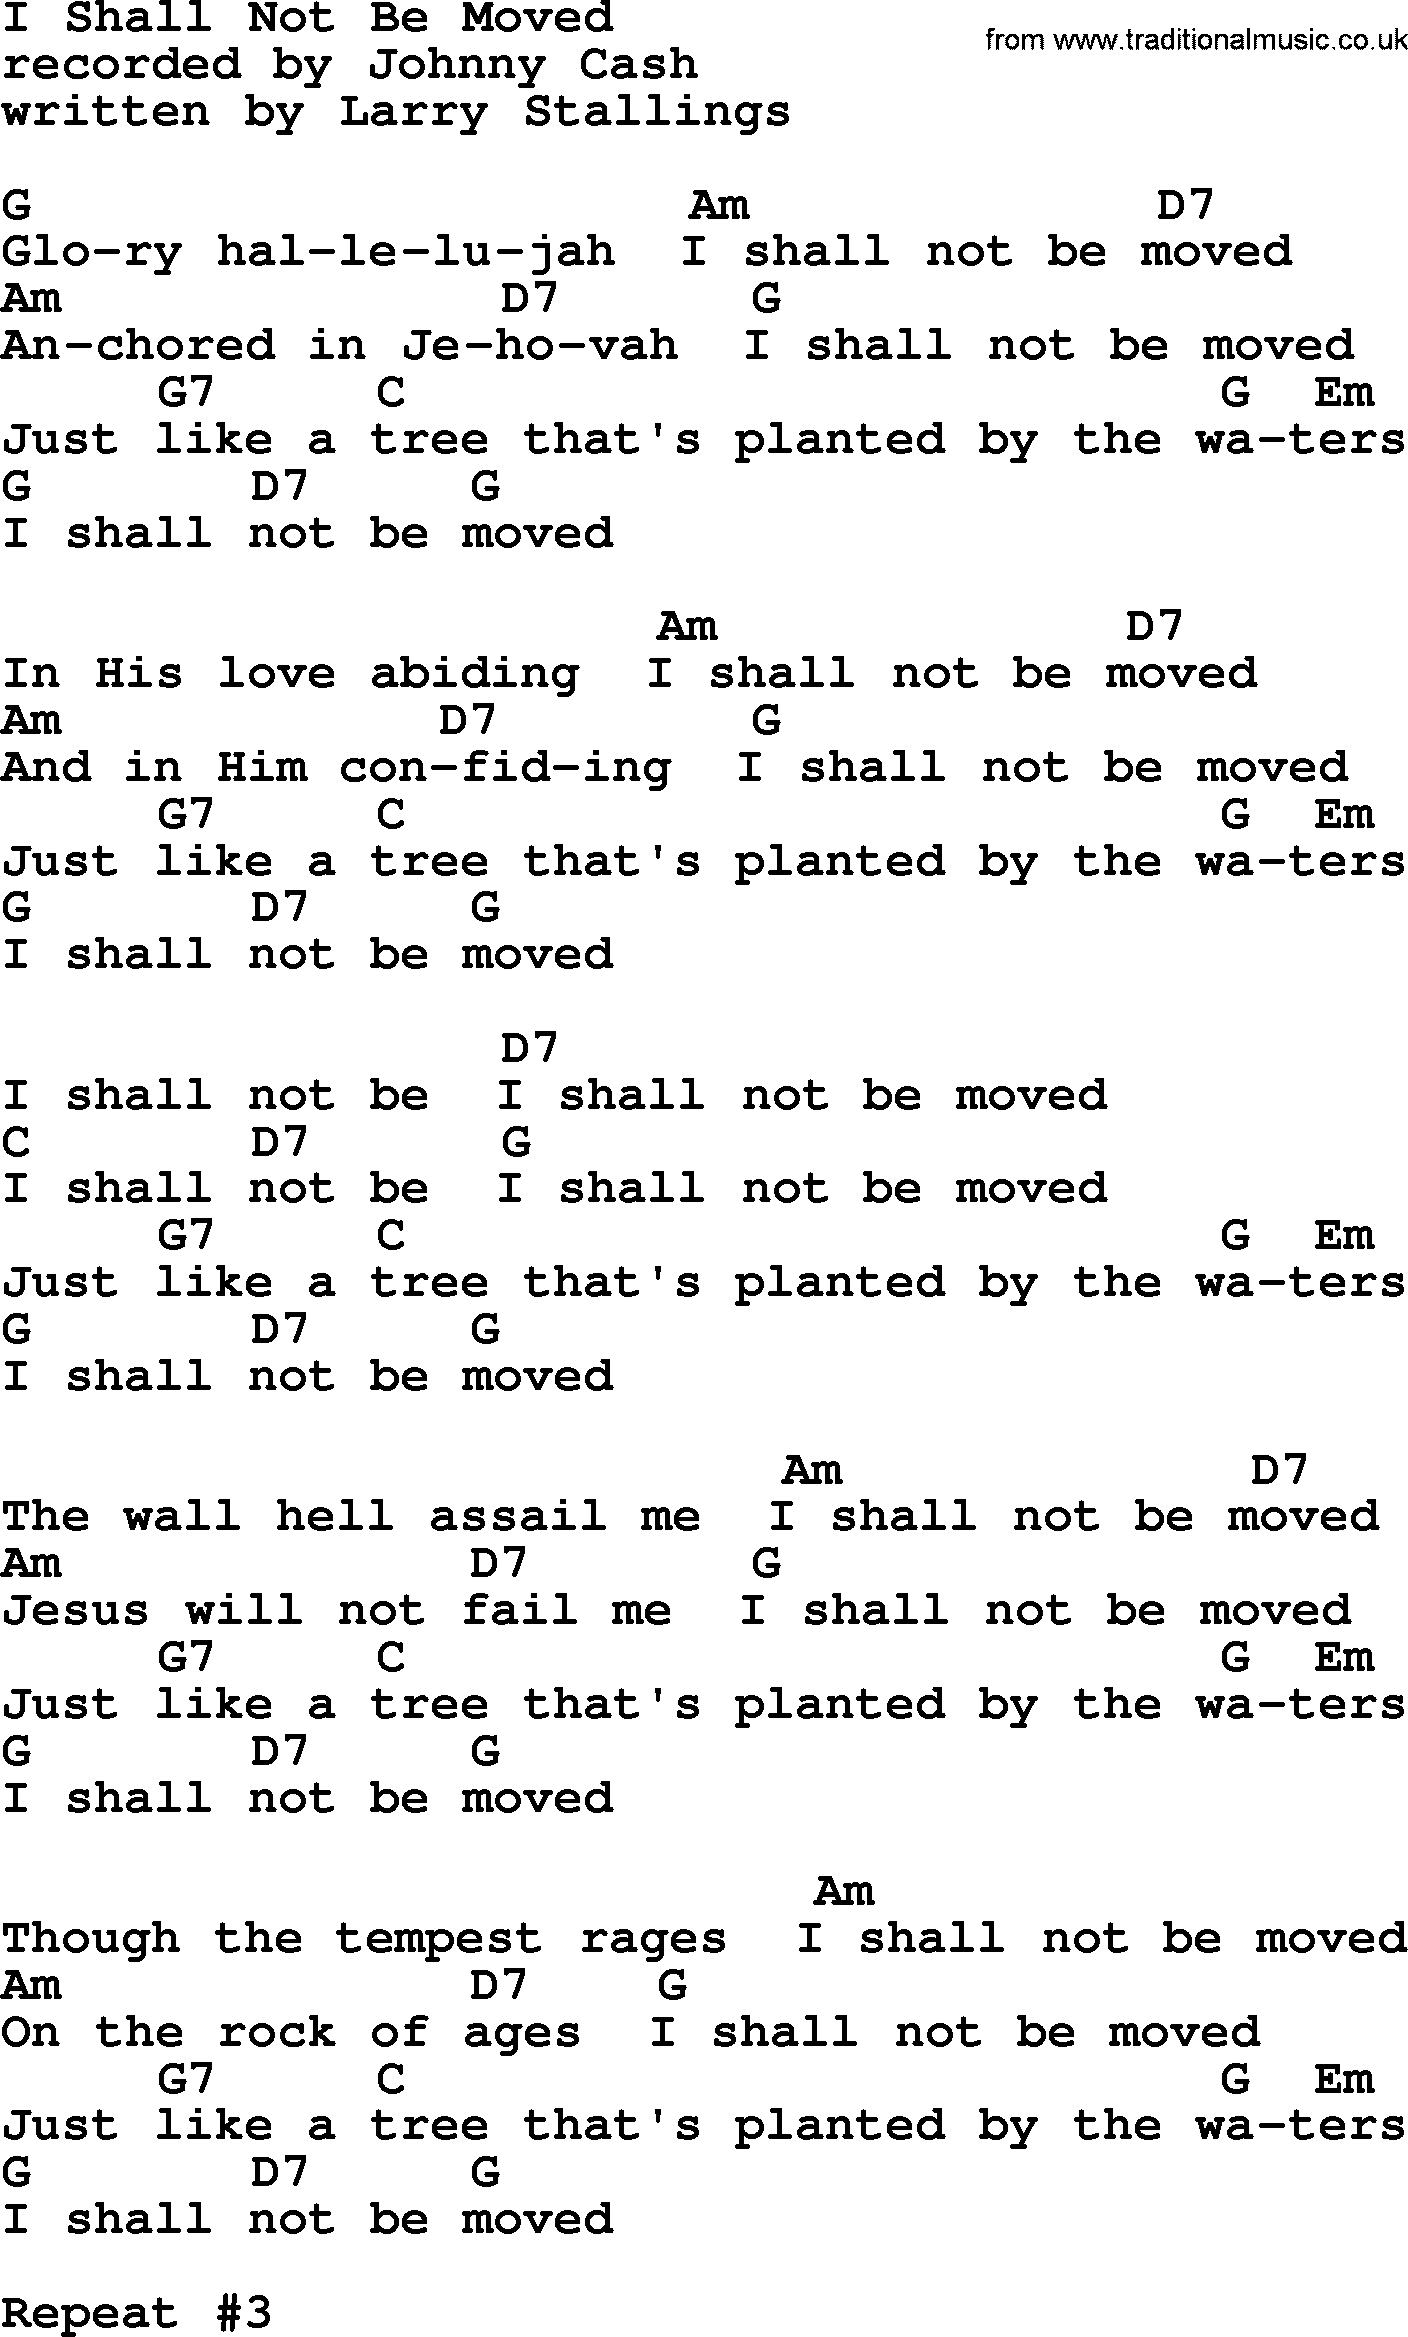 Johnny Cash Song I Shall Not Be Moved Lyrics And Chords